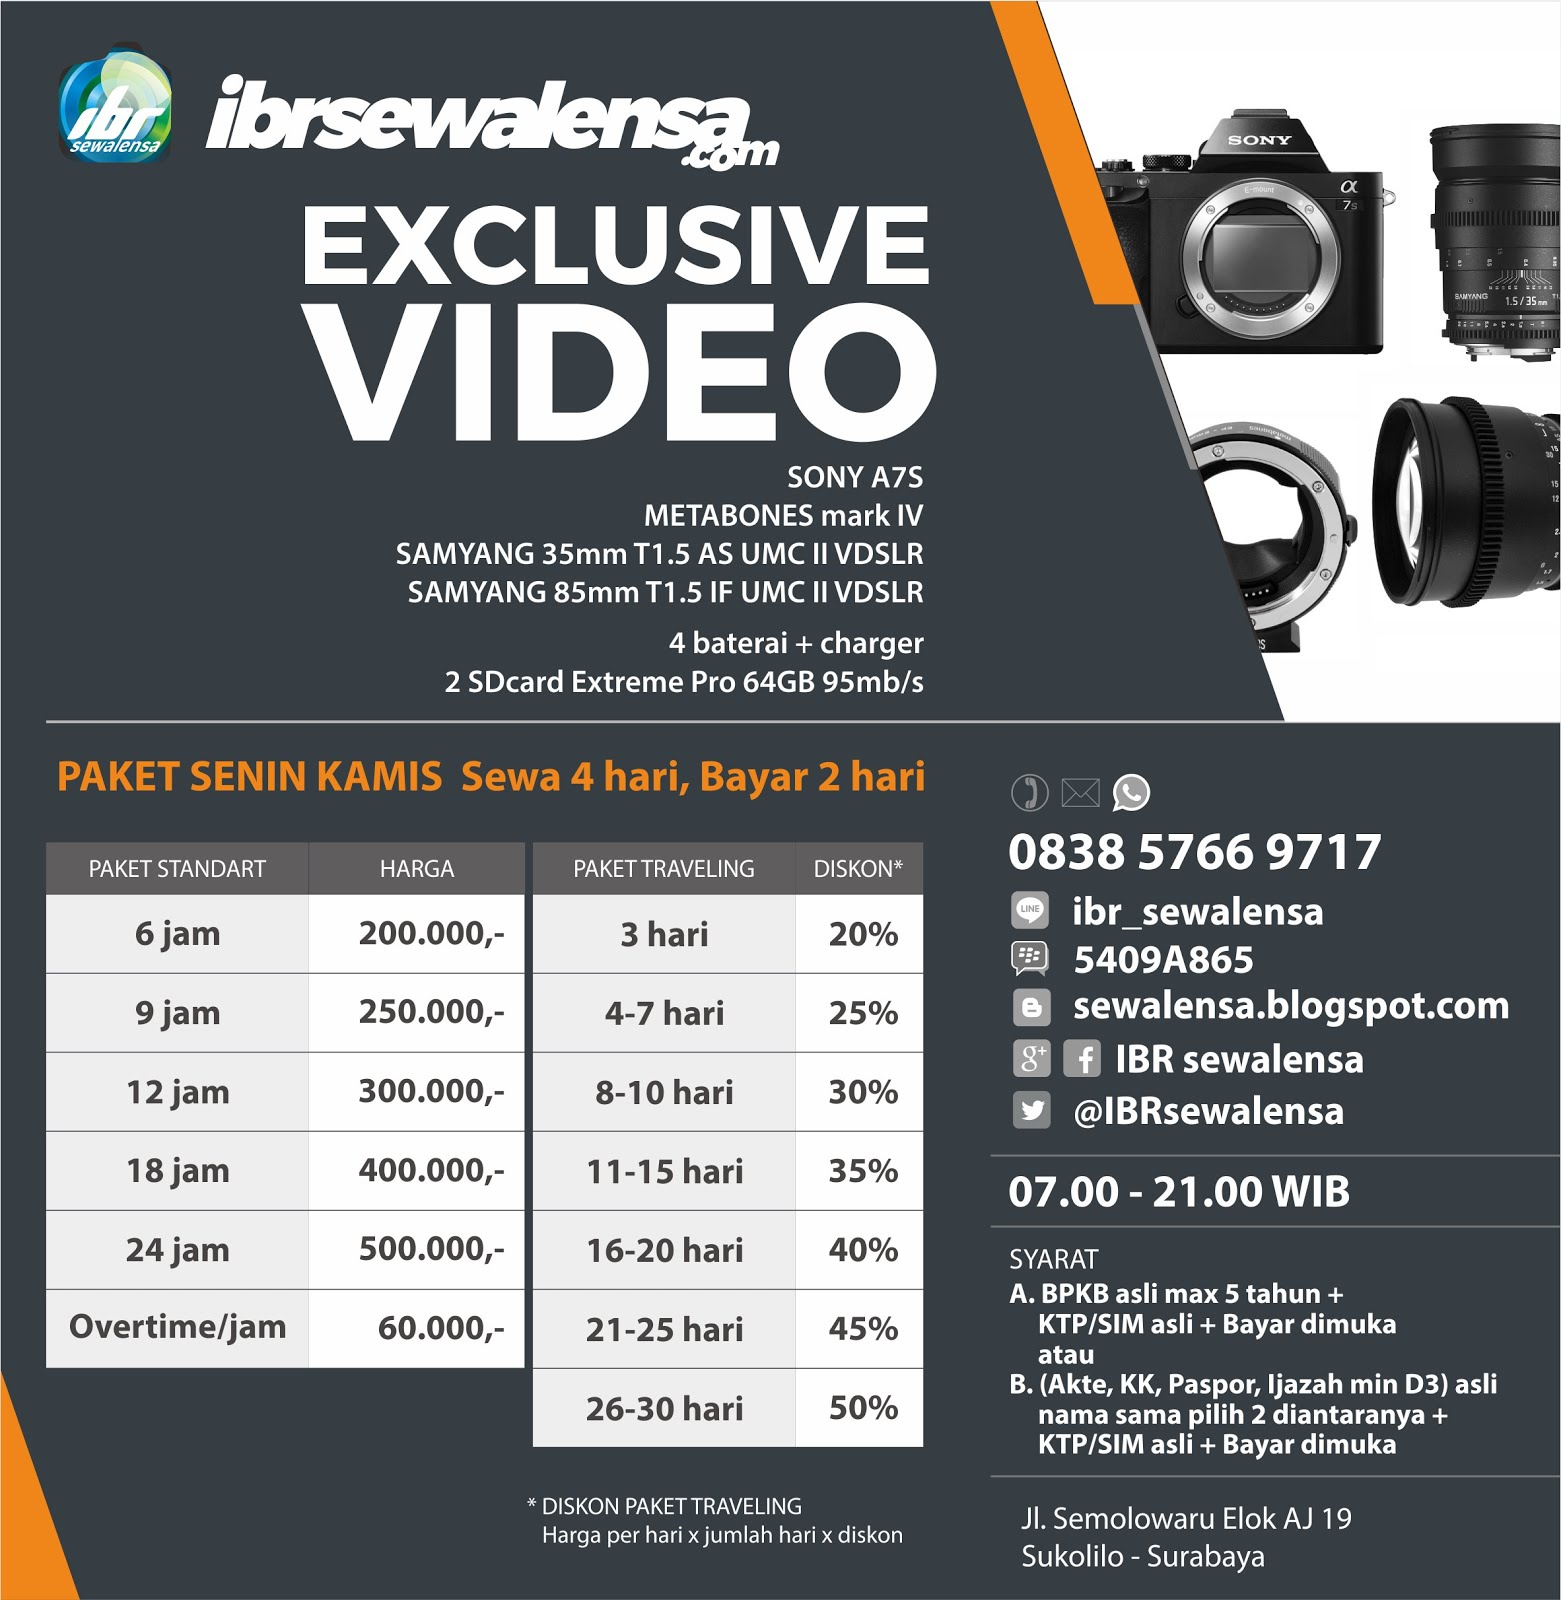 Sewa Rental Kamera & Lensa, Paket Exclusive Video